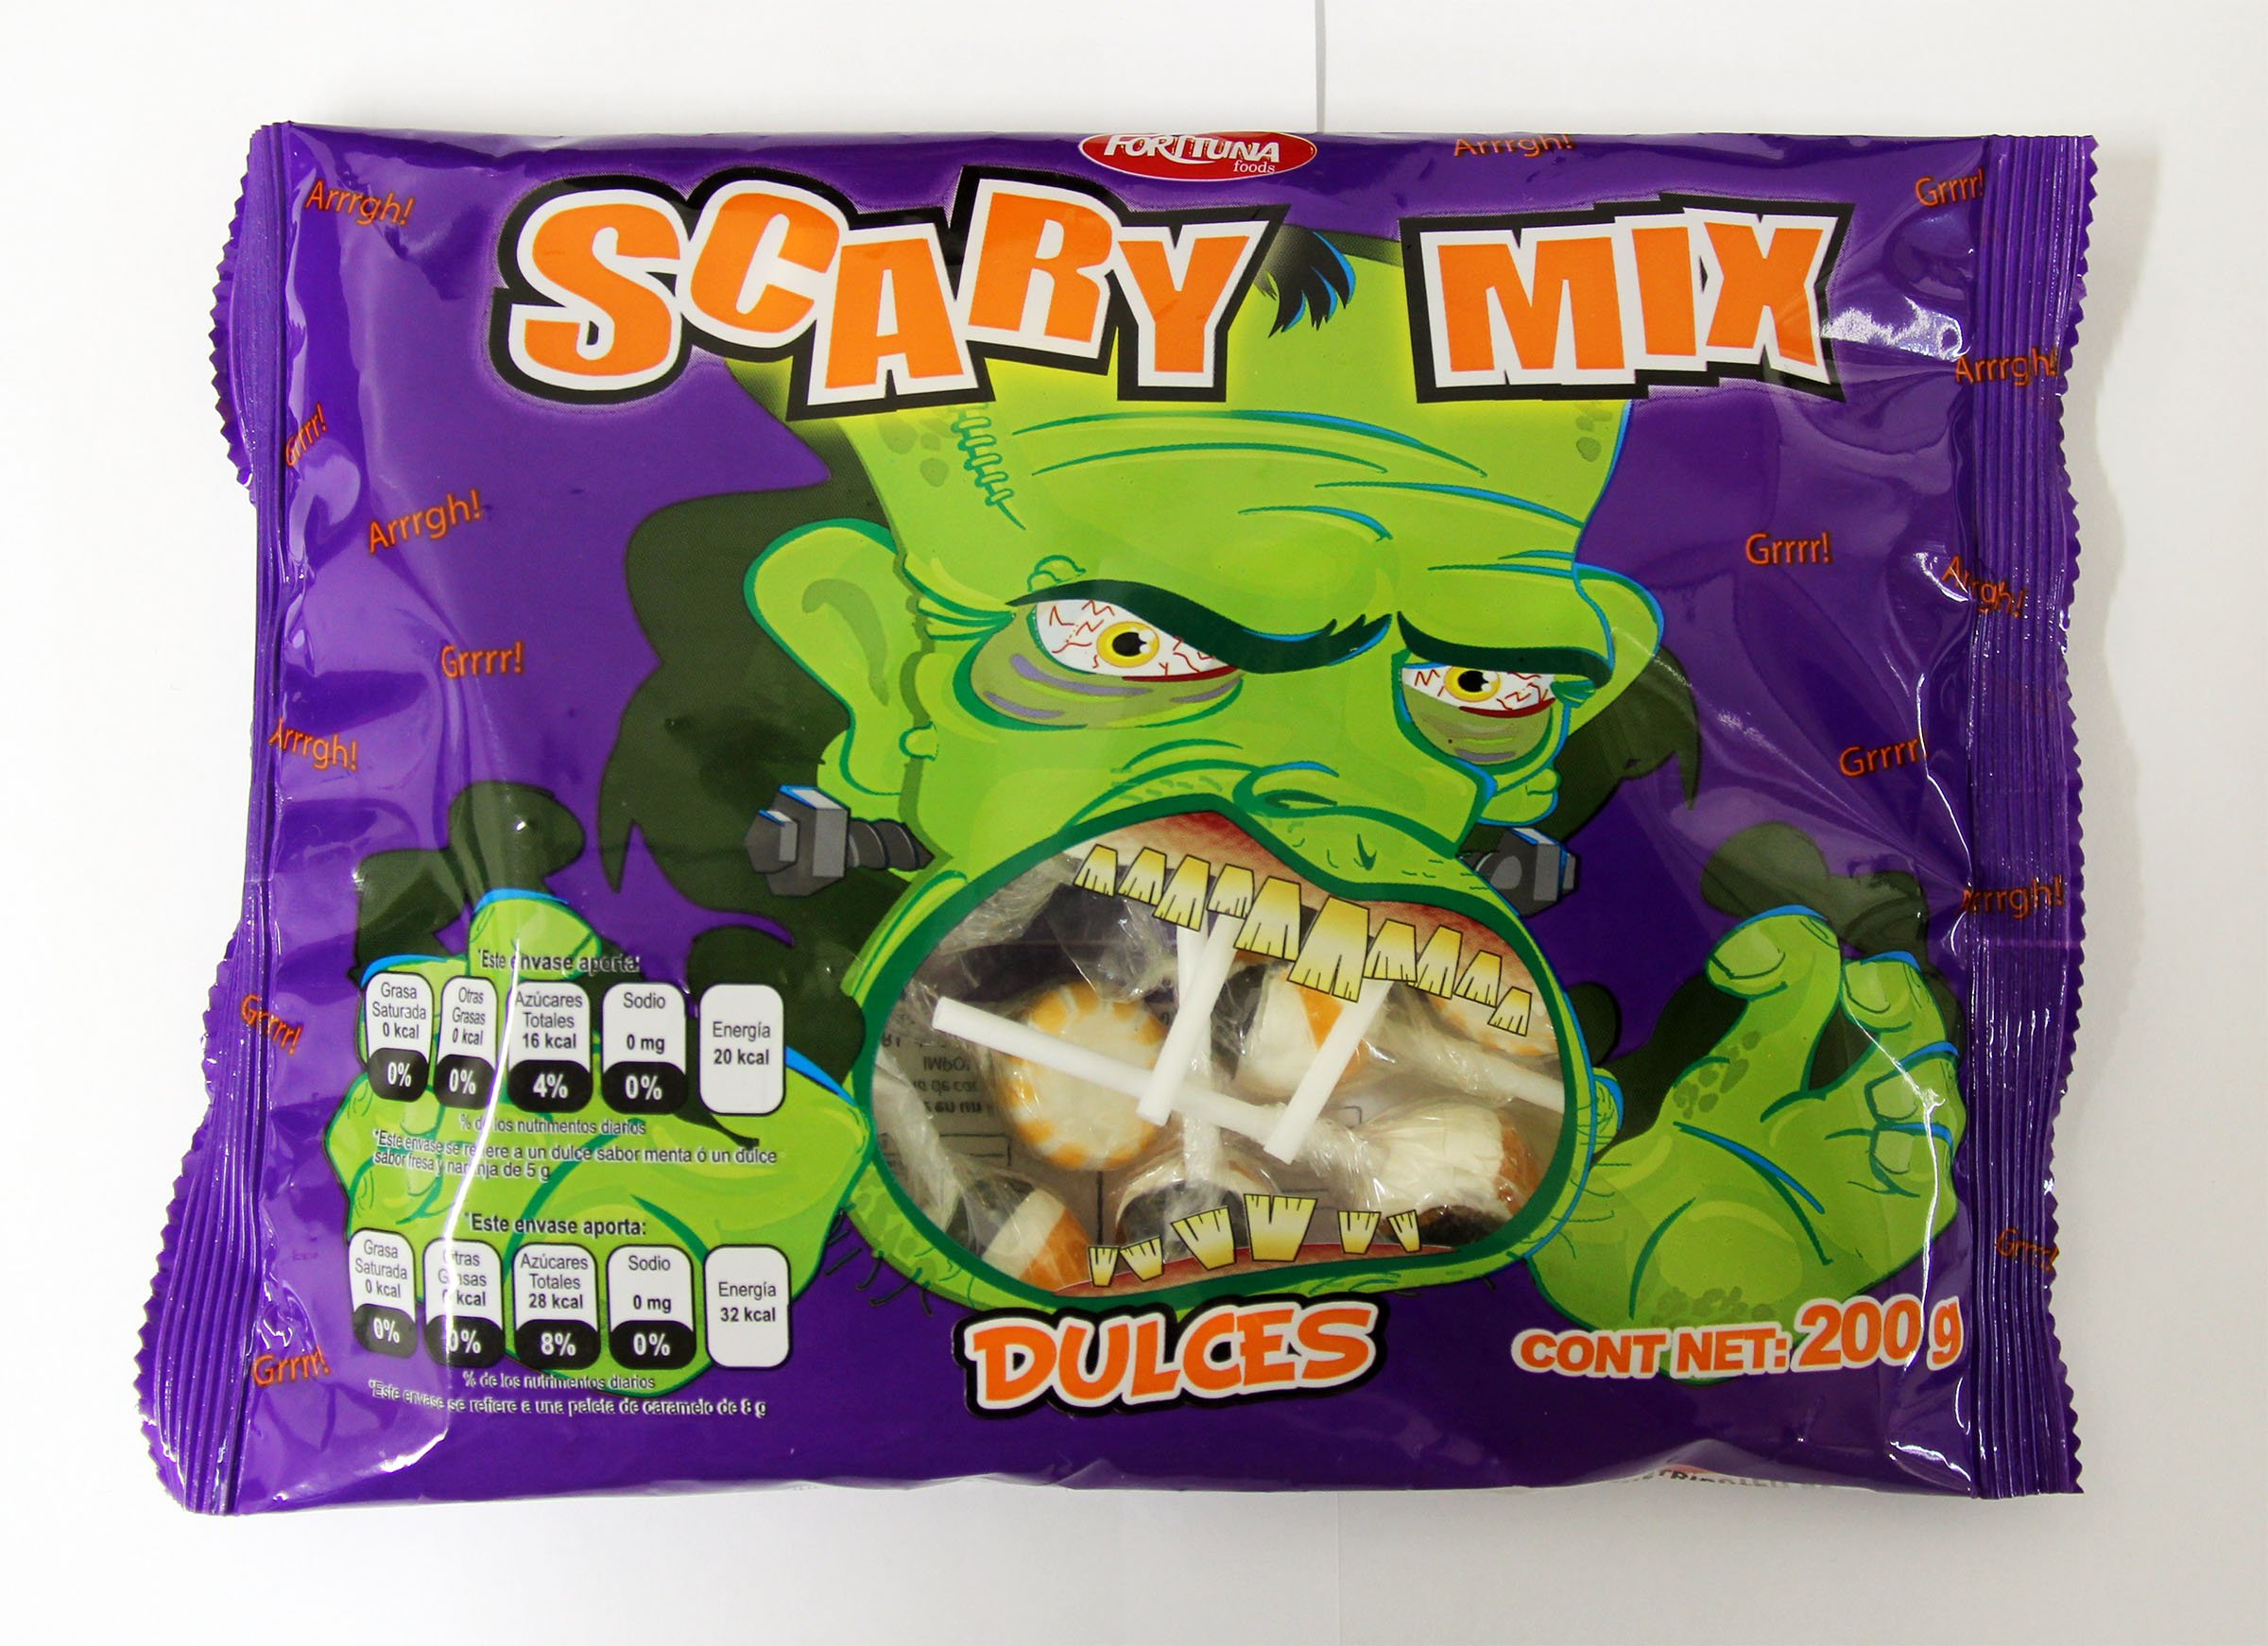 Scary Mix Candy Mix